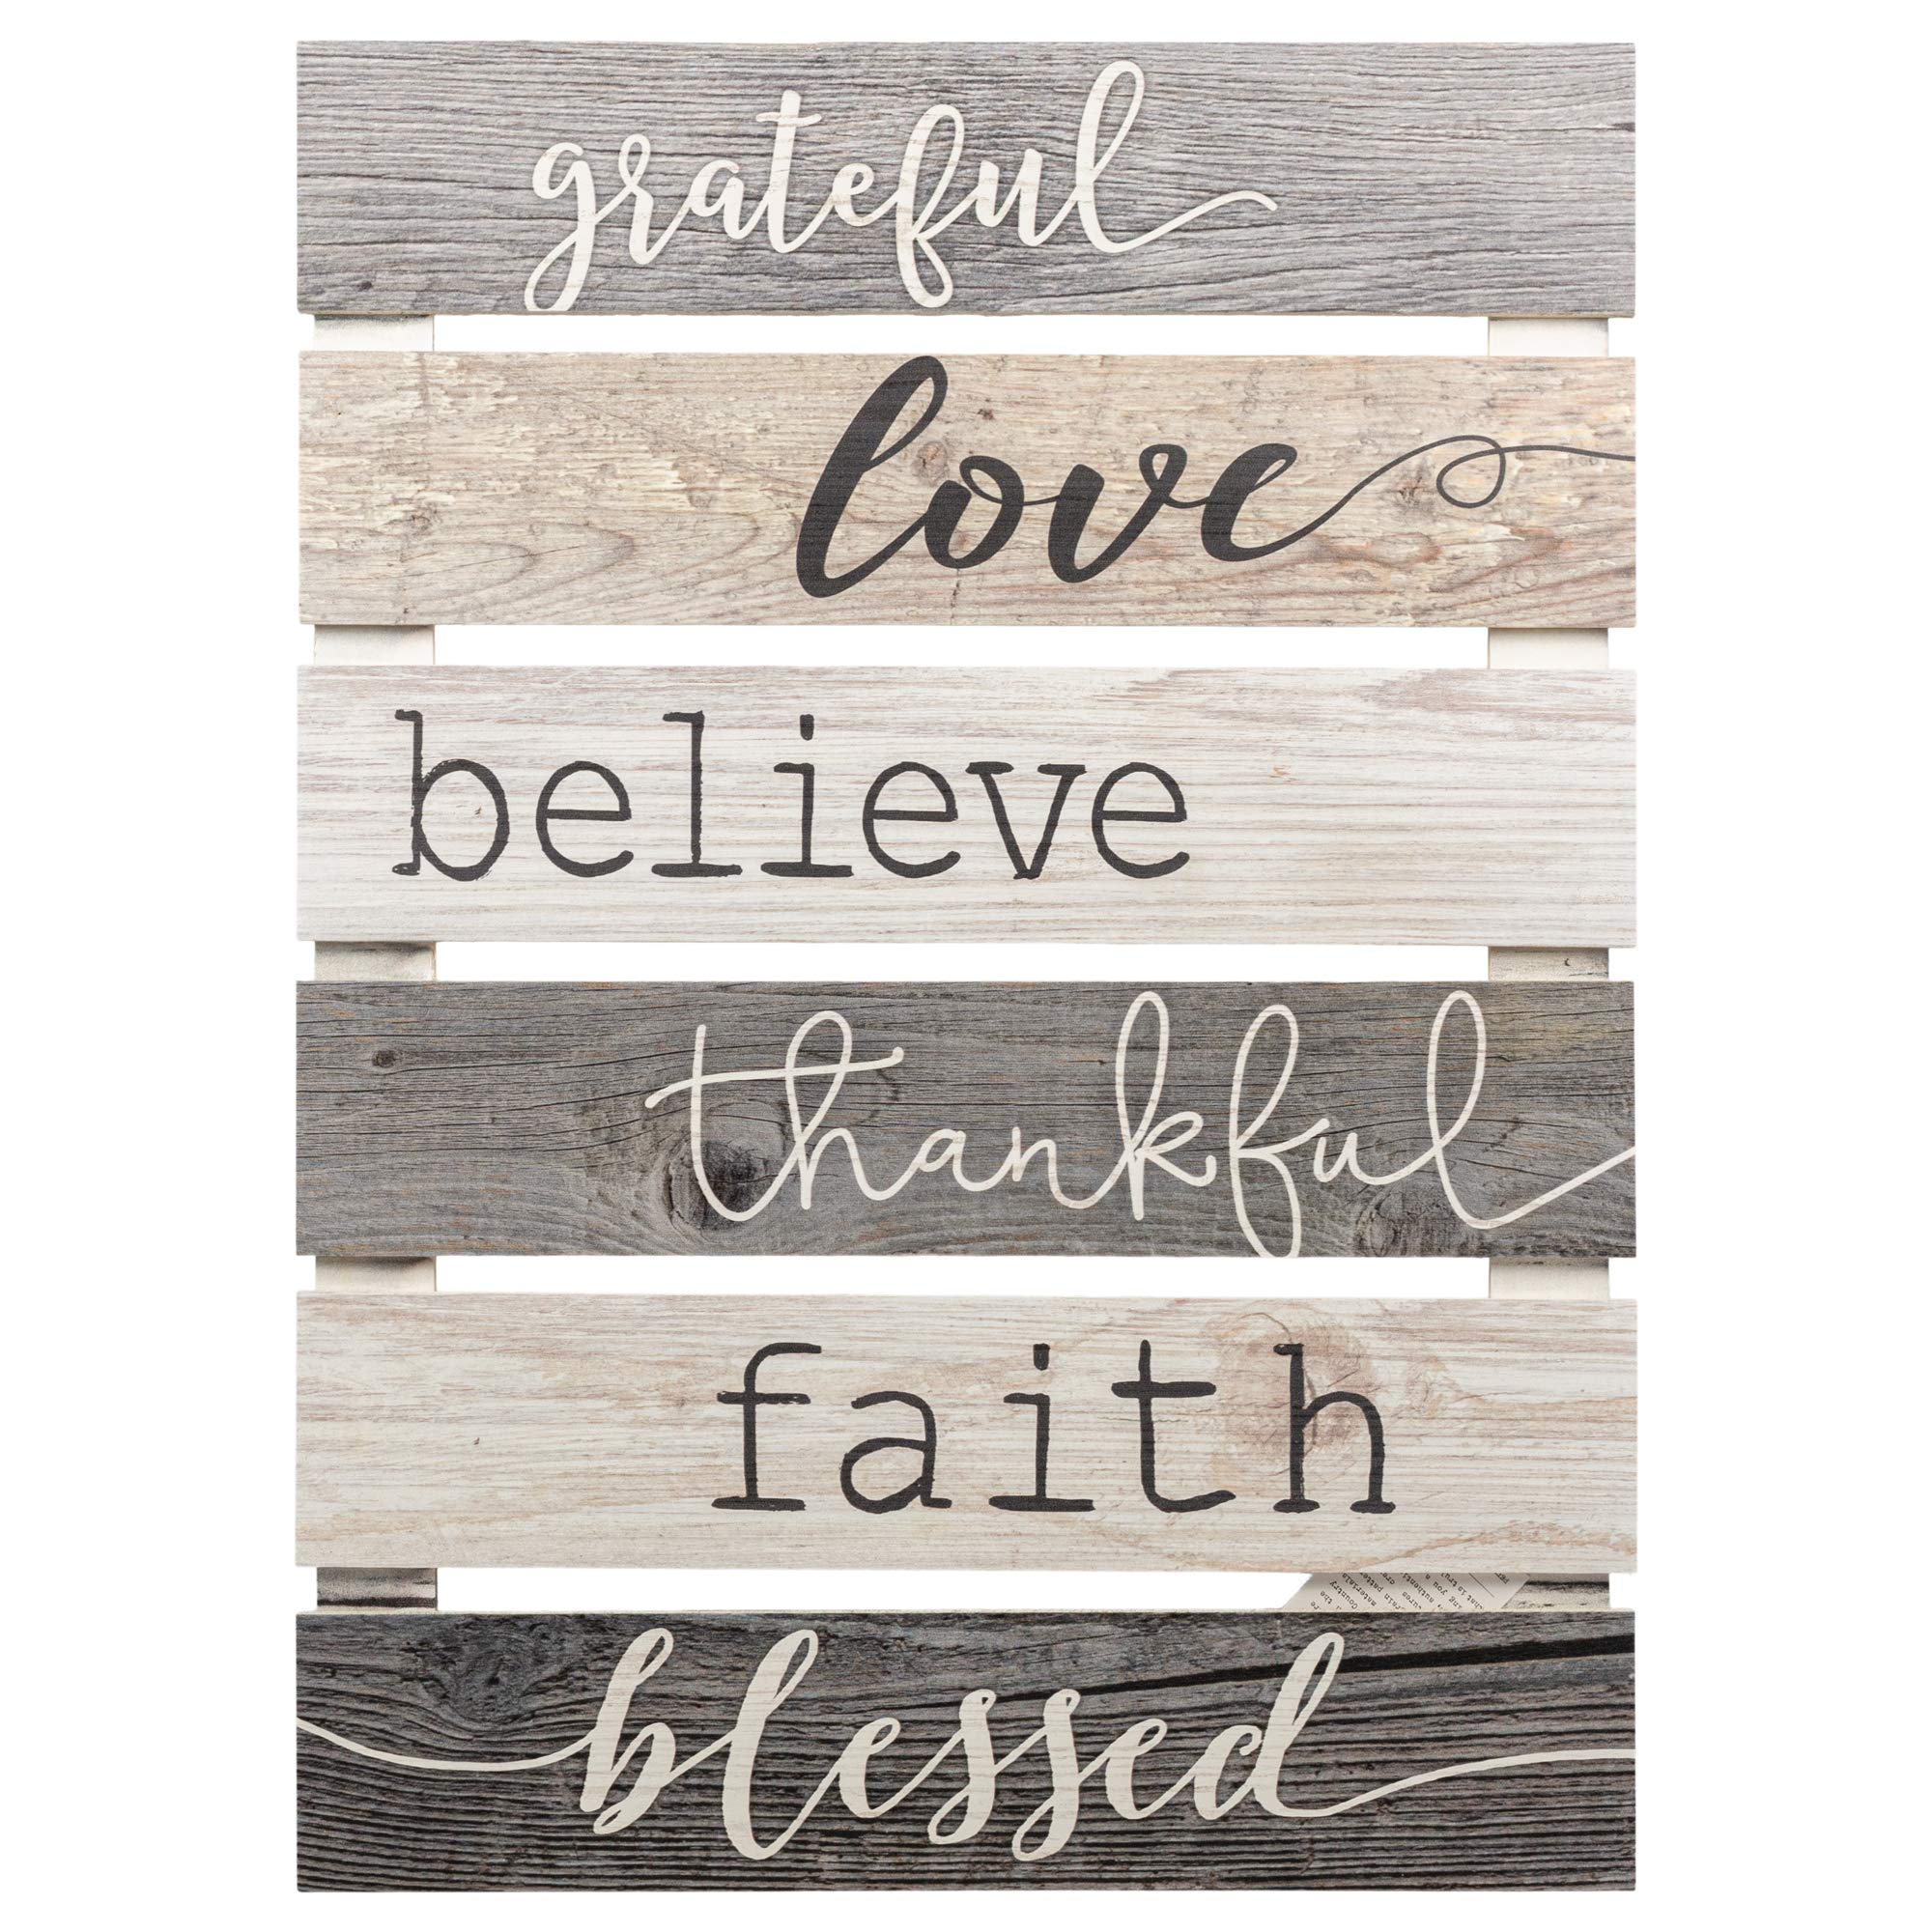 P. Graham Dunn Grateful Love Believe Thankful Faith Blessed Grey 17 x 24 Inch Solid Pine Wood Skid Wall Plaque Sign by P. Graham Dunn